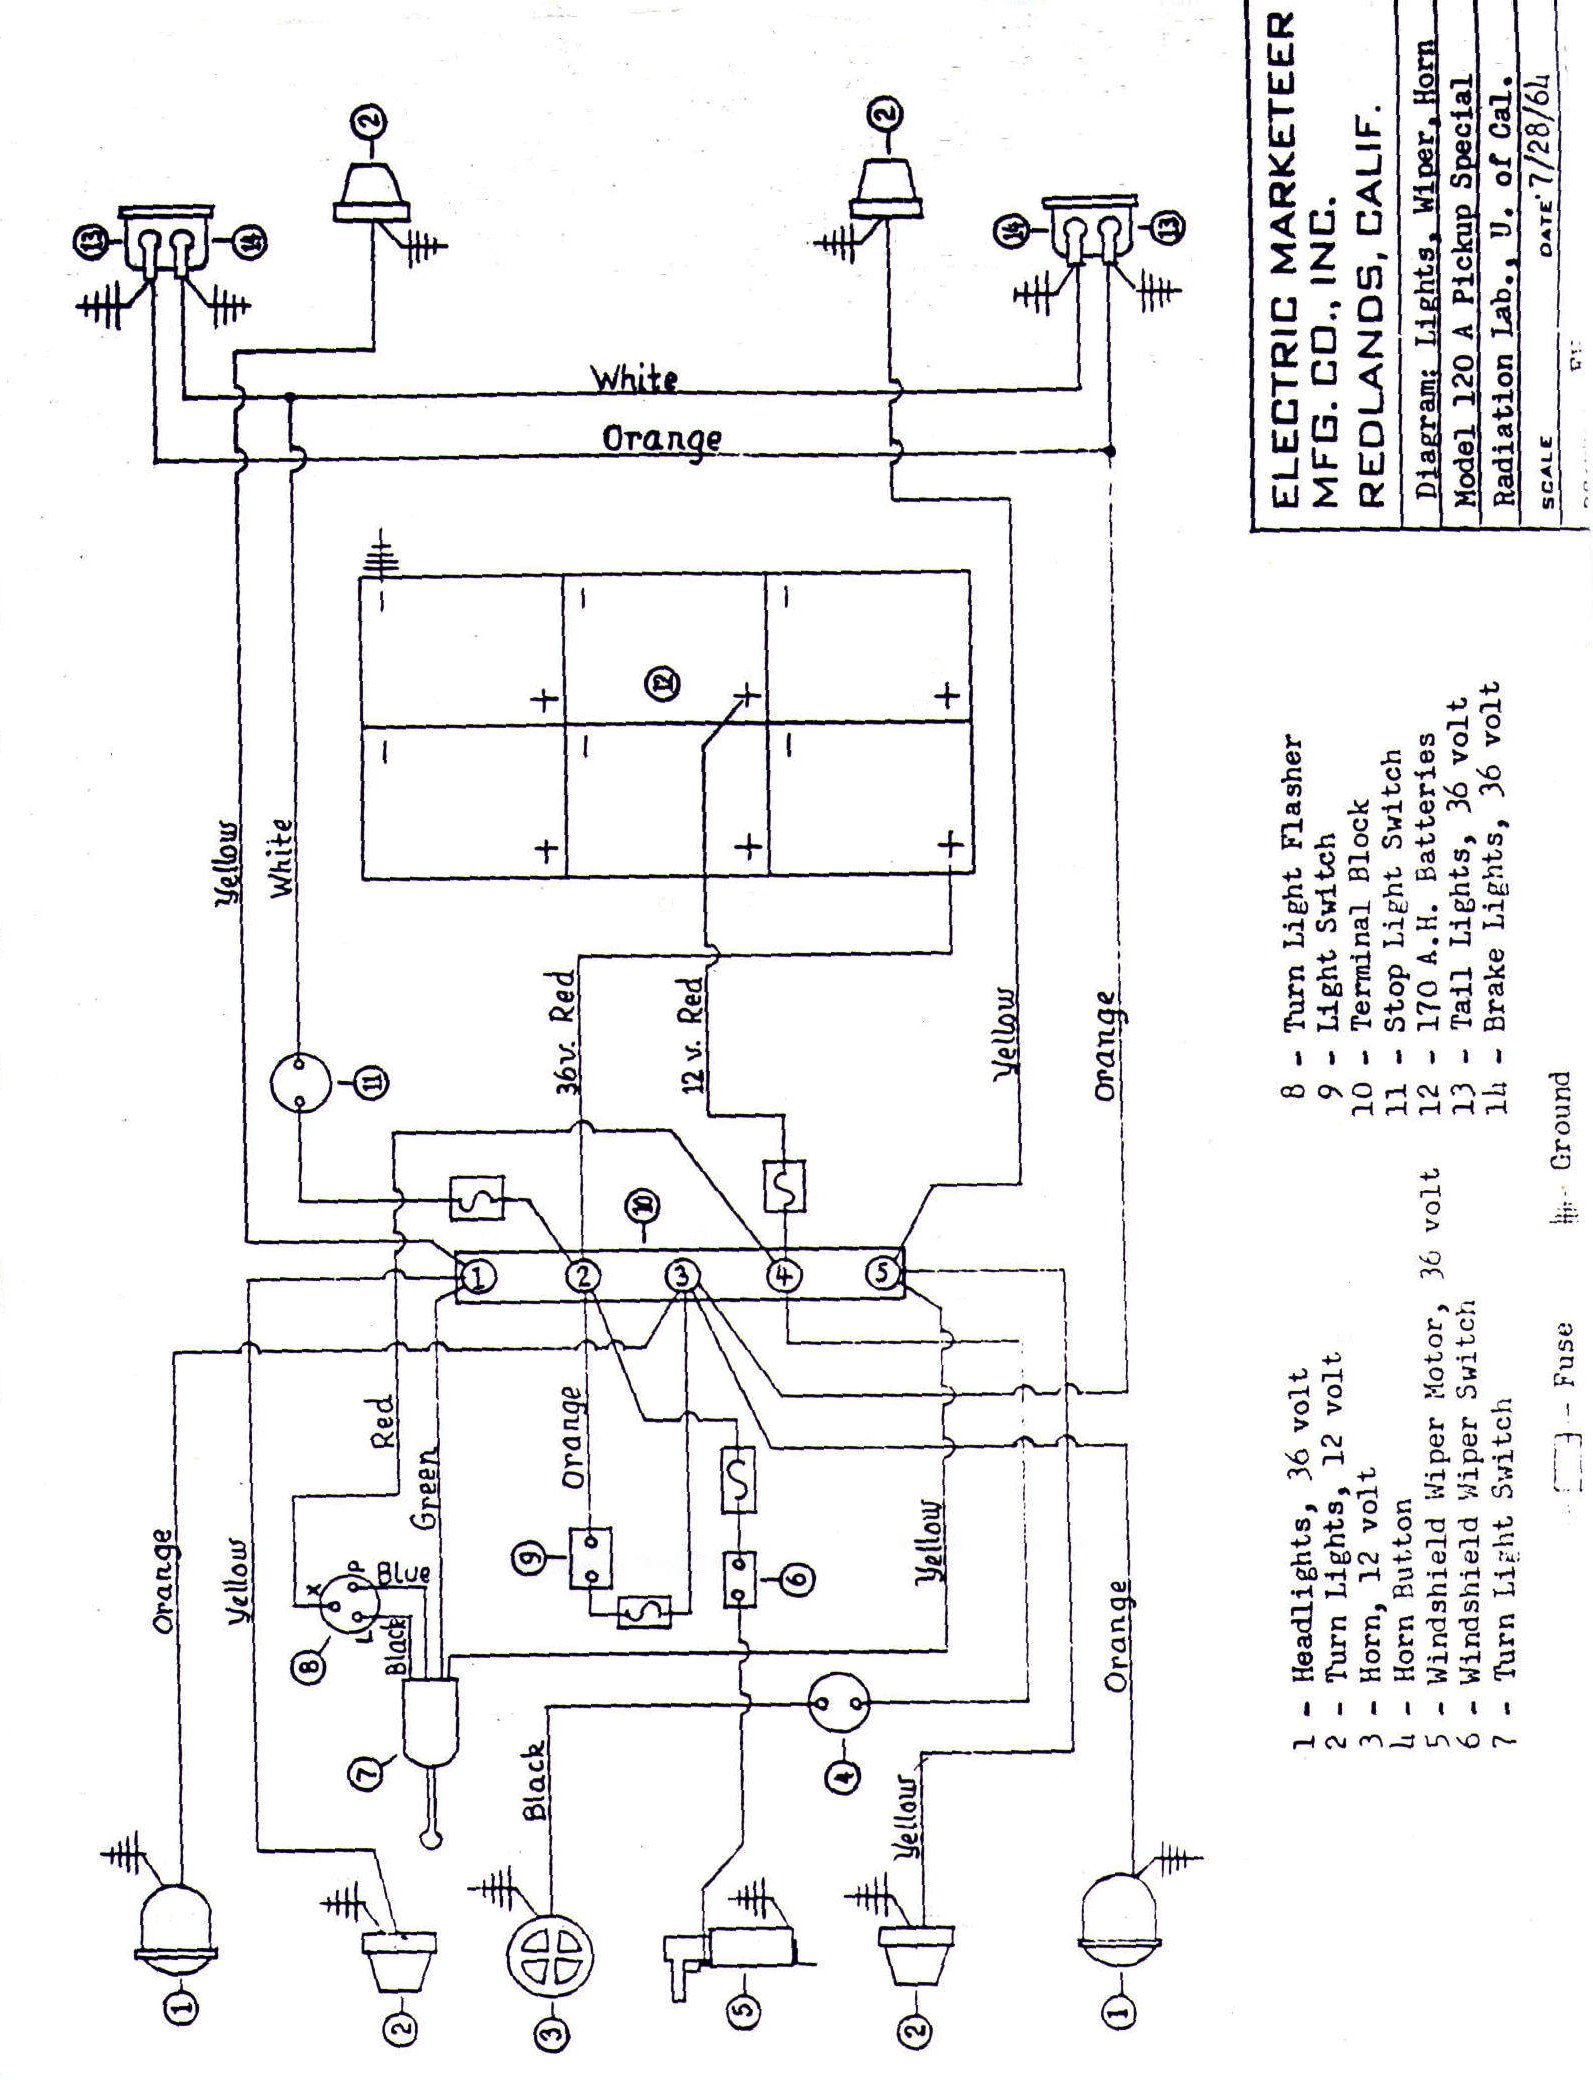 Westinghouse Golf Cart Wiring Diagram - automotive ... on 36 volt lights, 36 volt battery, 72 volt wiring diagram, 48 volt wiring diagram, 36 volt headlight, 36 volt ezgo wiring, 36 volt heater, 120 volt wiring diagram, 36 volt tools, 36 volt parts, ford taurus coolant diagram, 36 volt generator, ezgo 36 volt diagram, 36 volt club car batteries, 36 volt alternator, 36 volt fuse, 36 volt circuit, 36 volt relay, 6 volt wiring diagram, 110 volt wiring diagram,